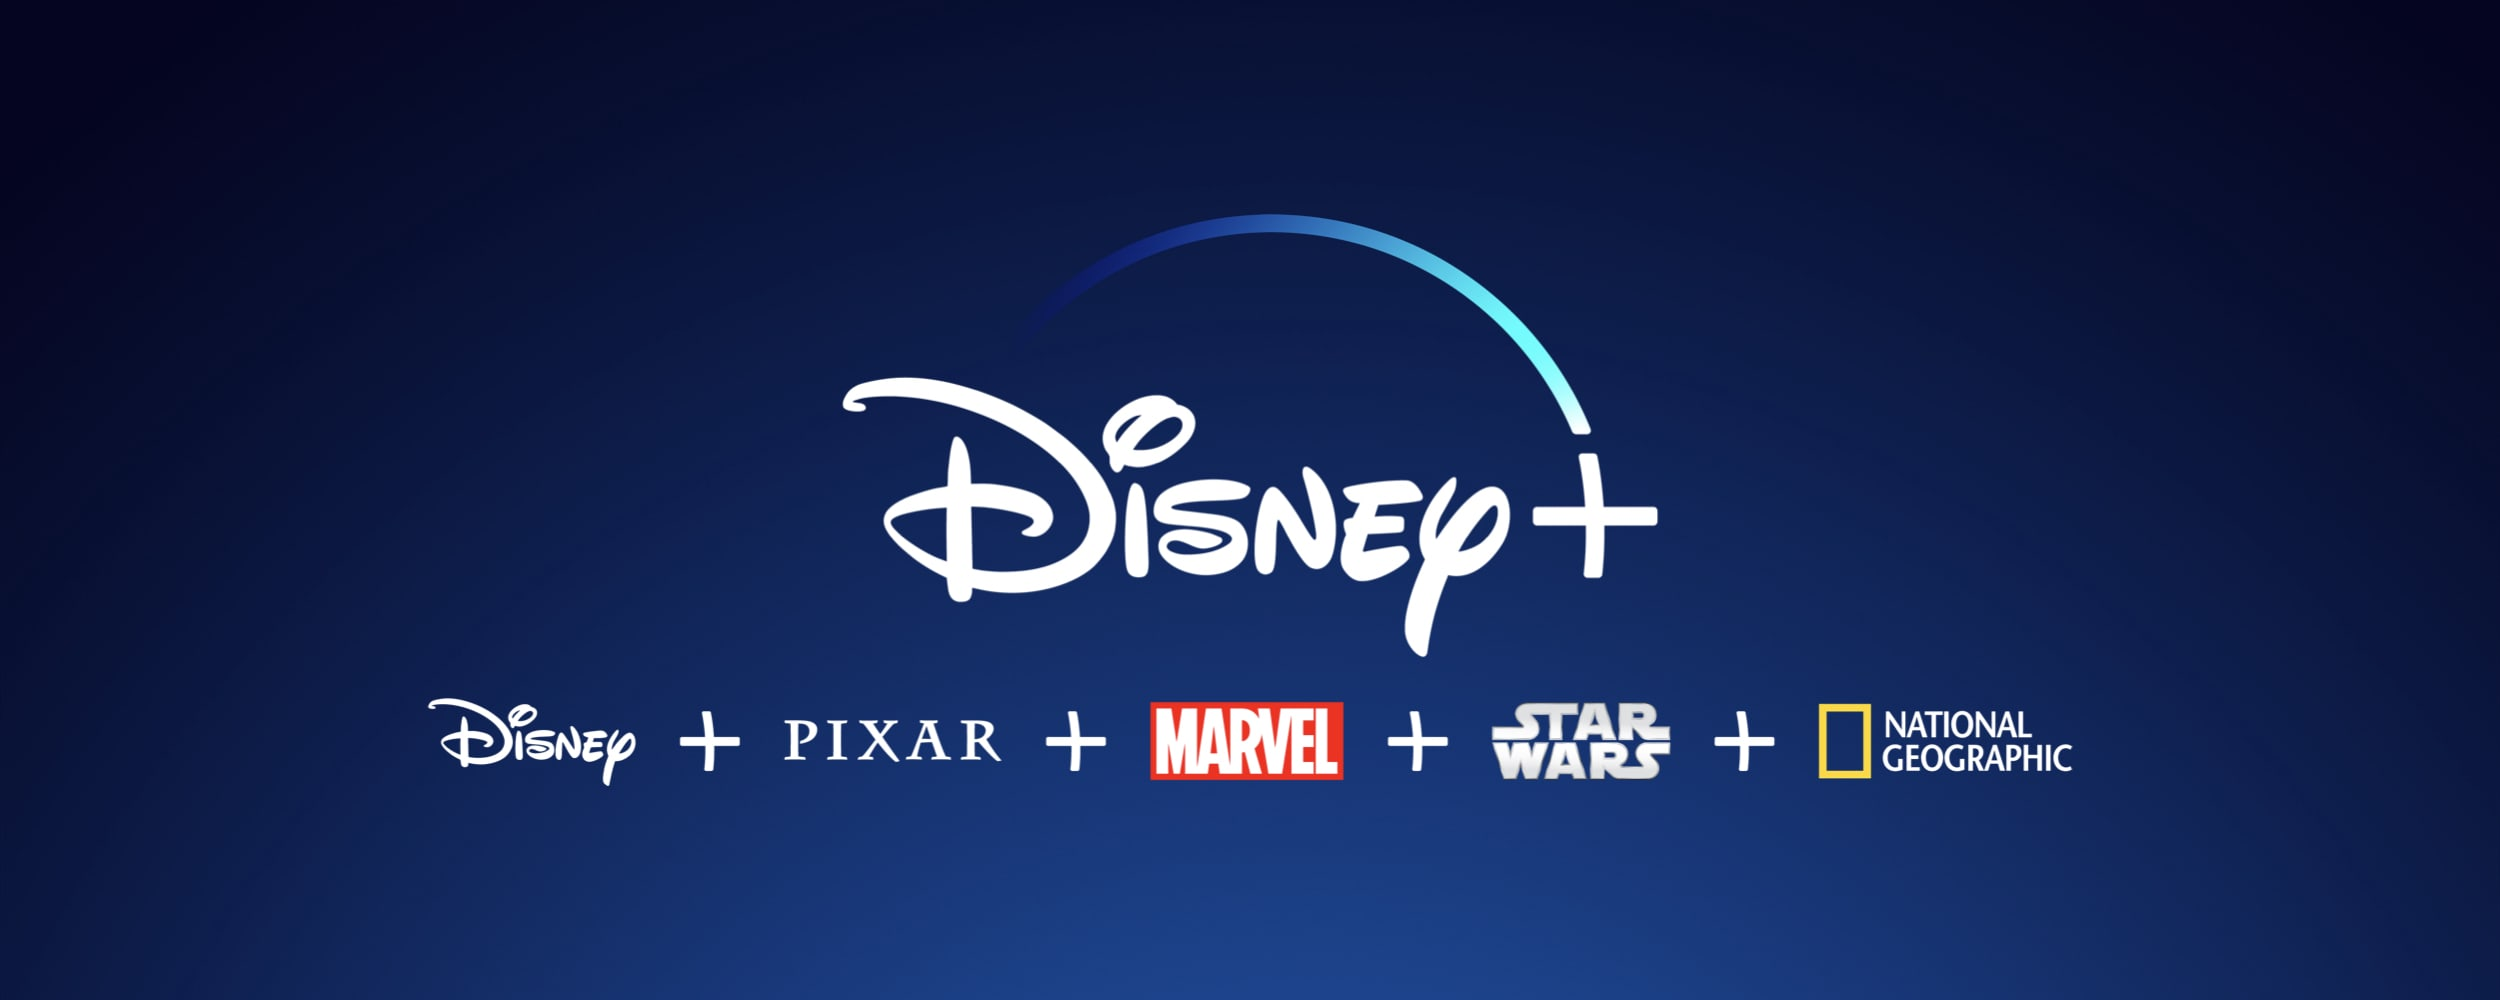 Disney+ at D23 Expo 20199